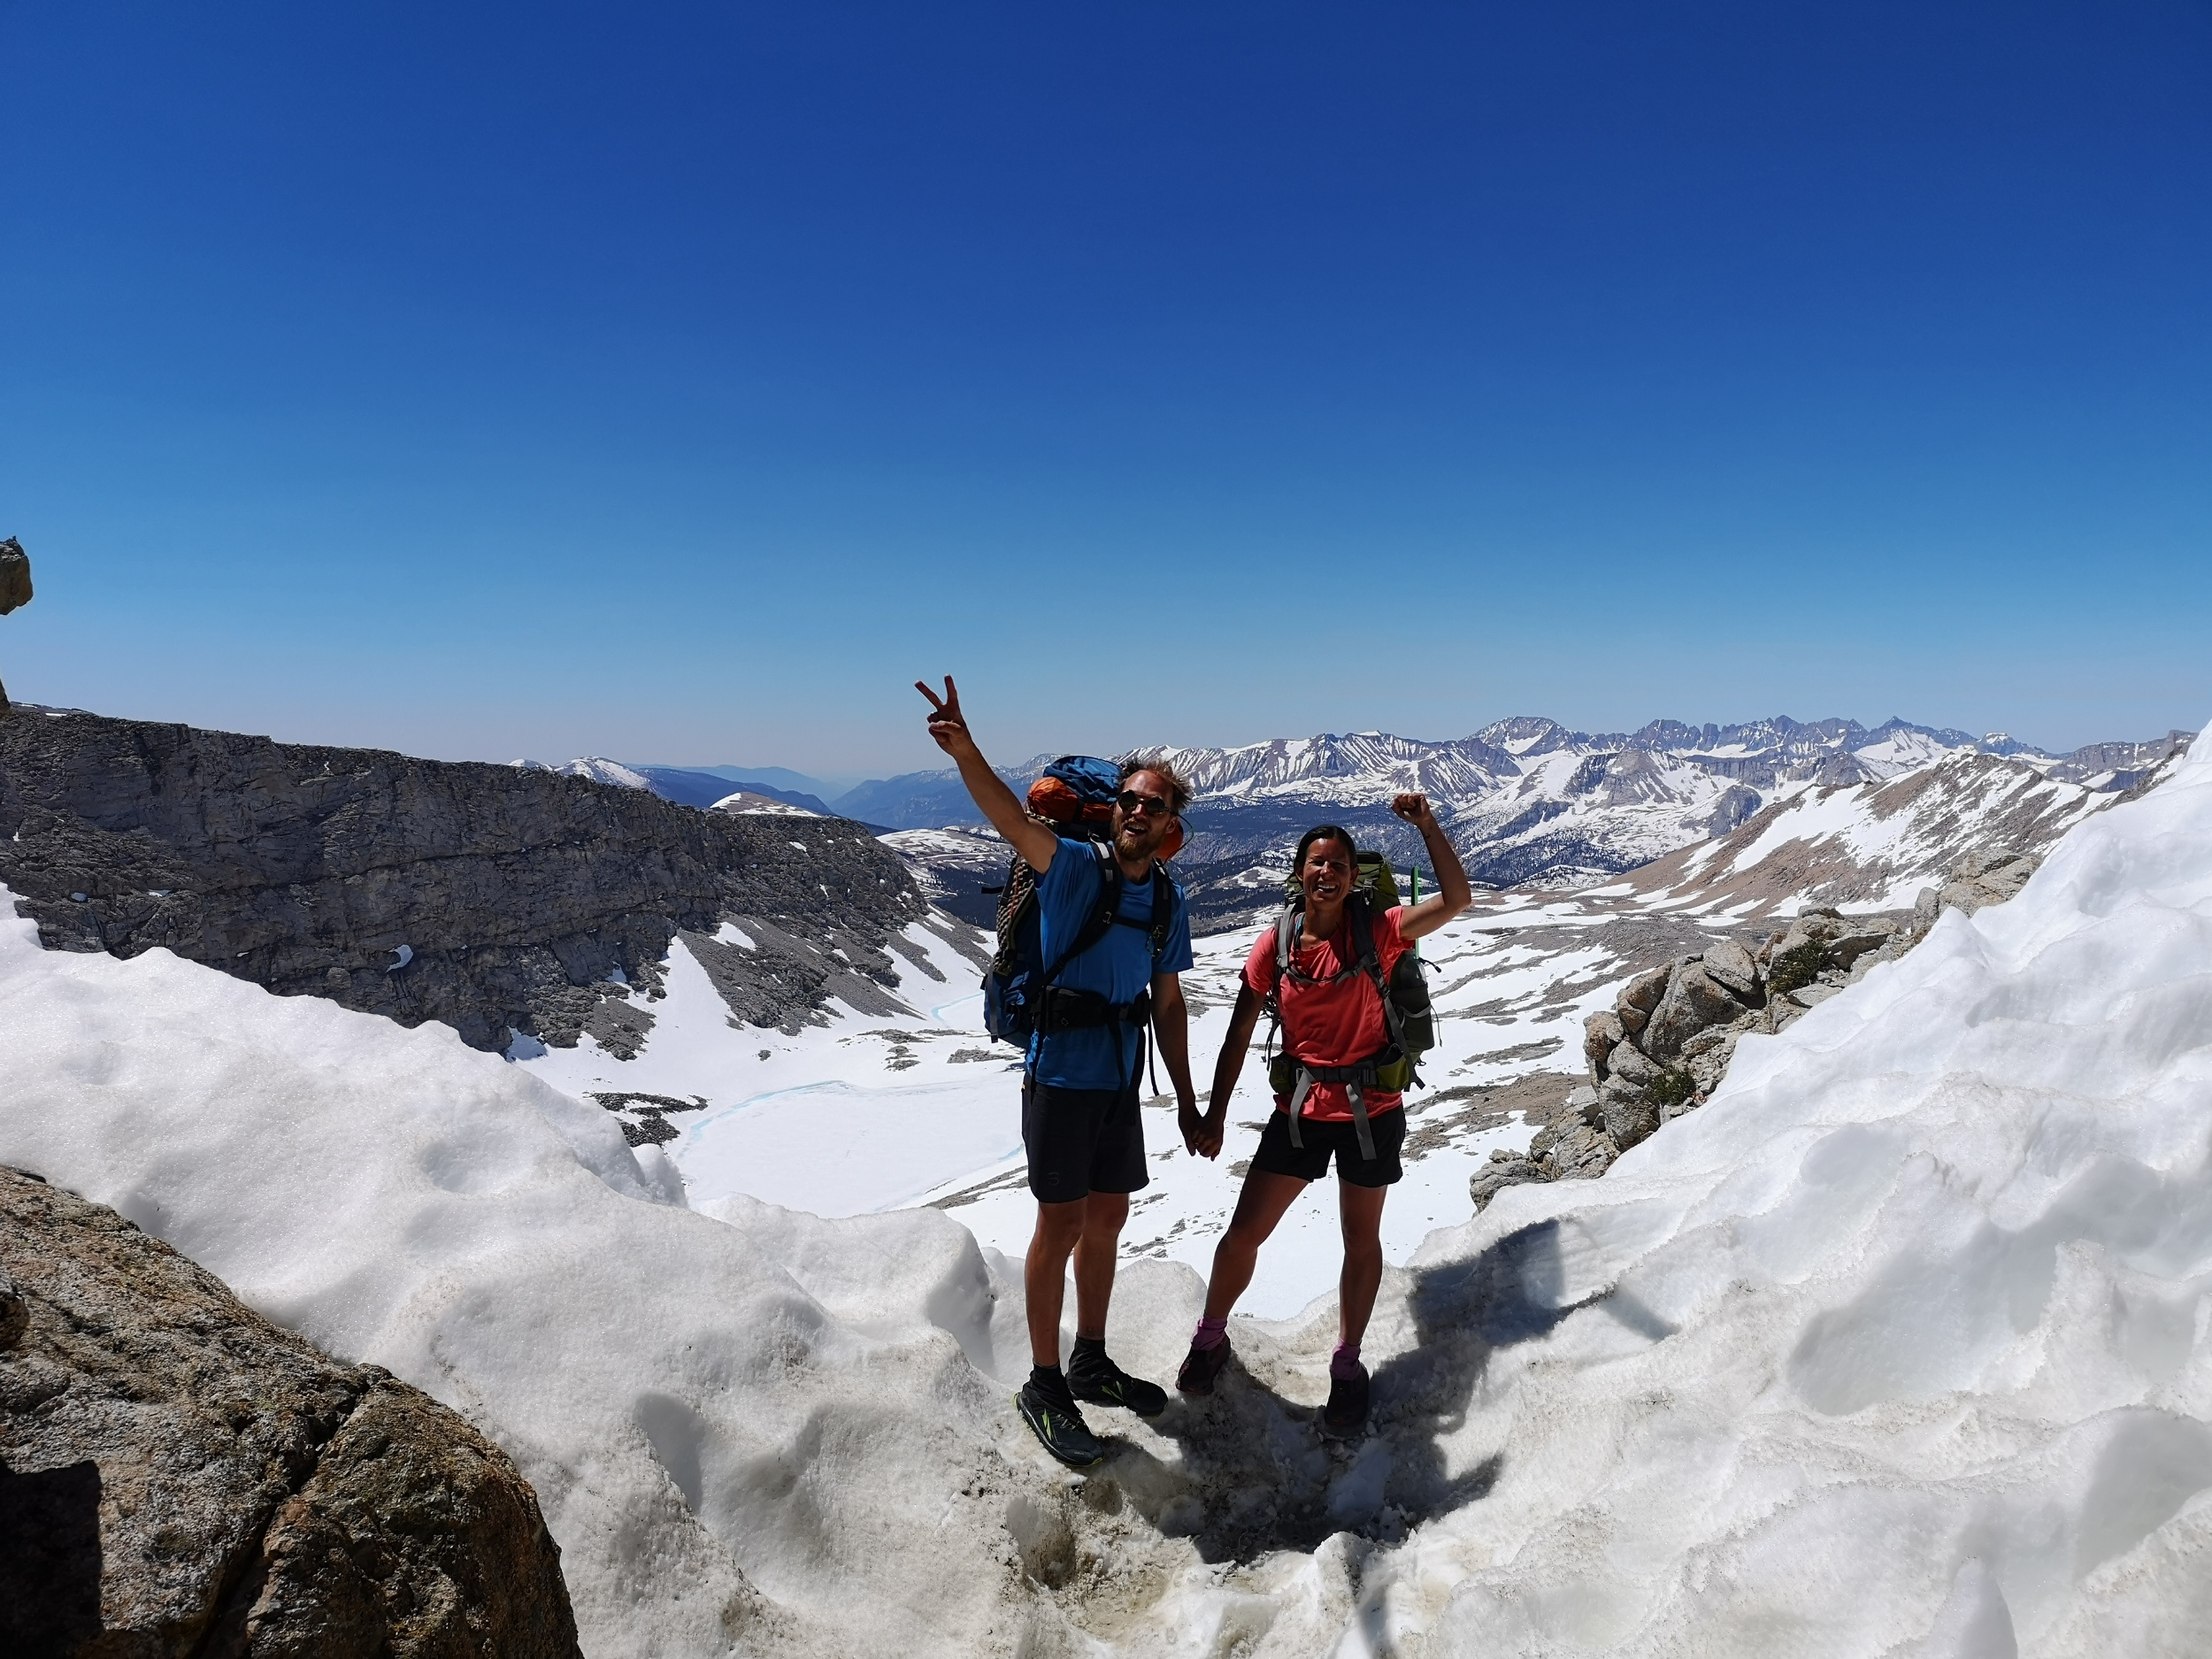 On top of Mather pass